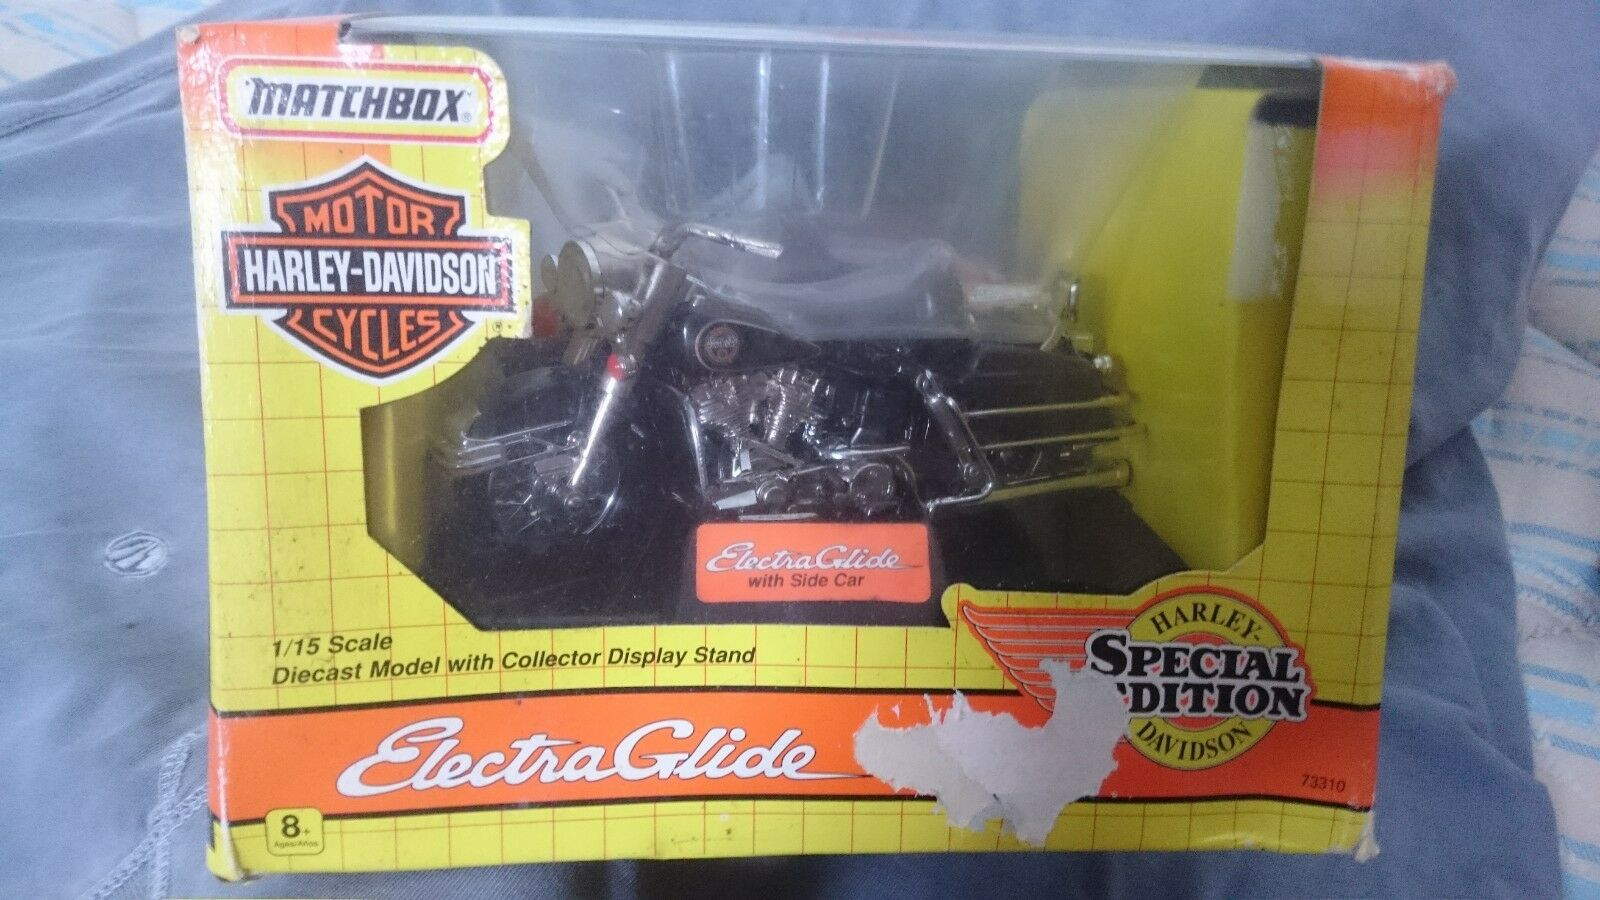 MATCHBOX HARLEY DAVIDSON ELECTRA GLIDE with SIDE CAR SPECIAL EDITION 73310 1 15